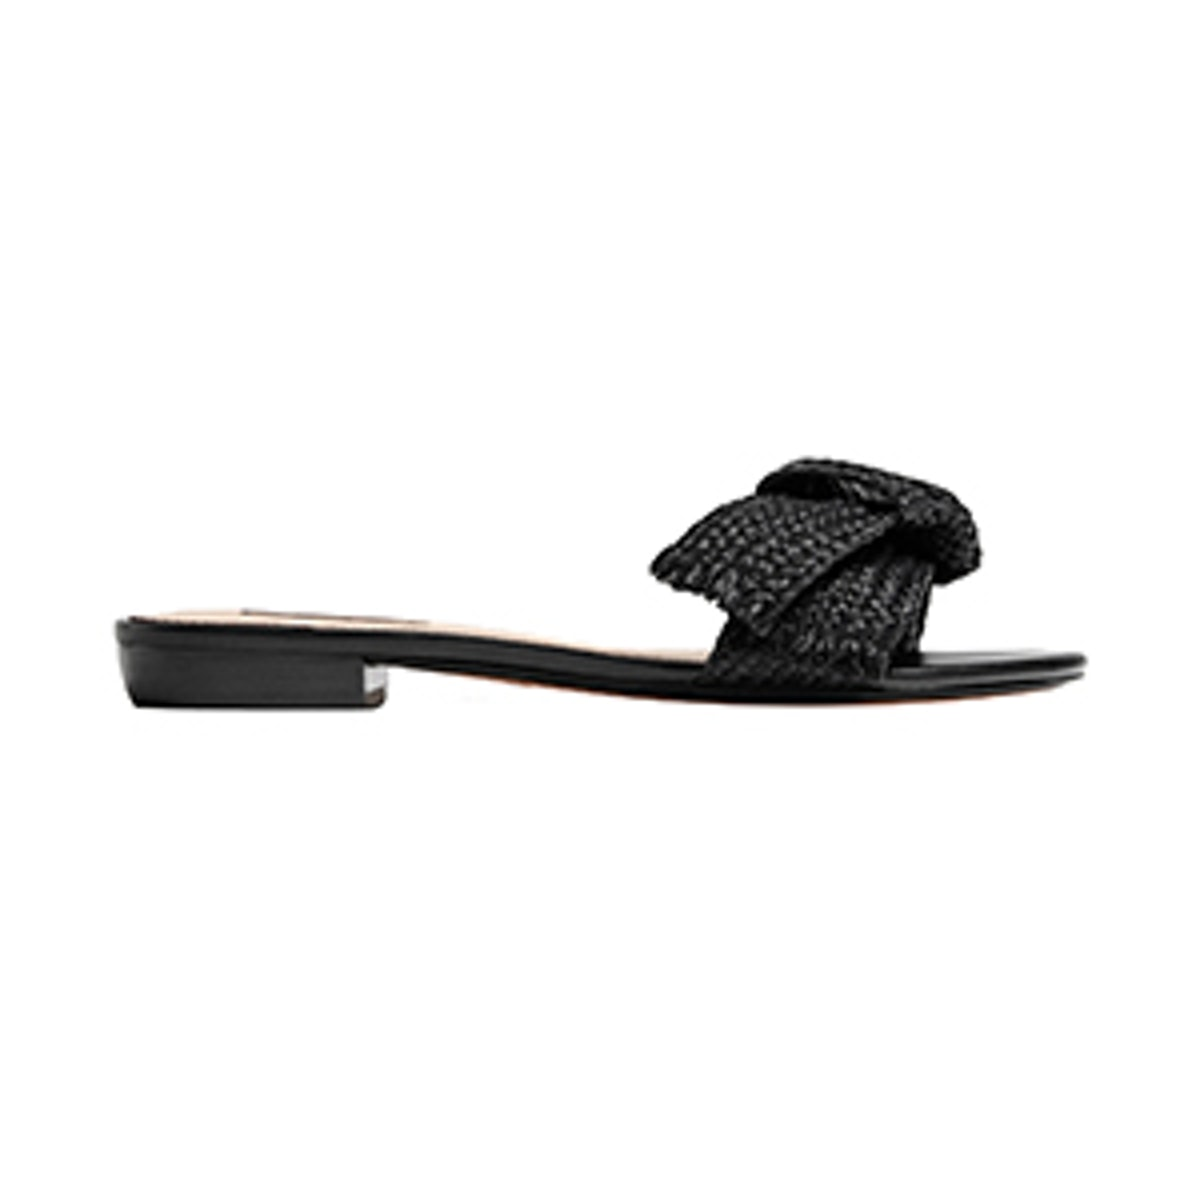 Black Sandals with Bow Detail